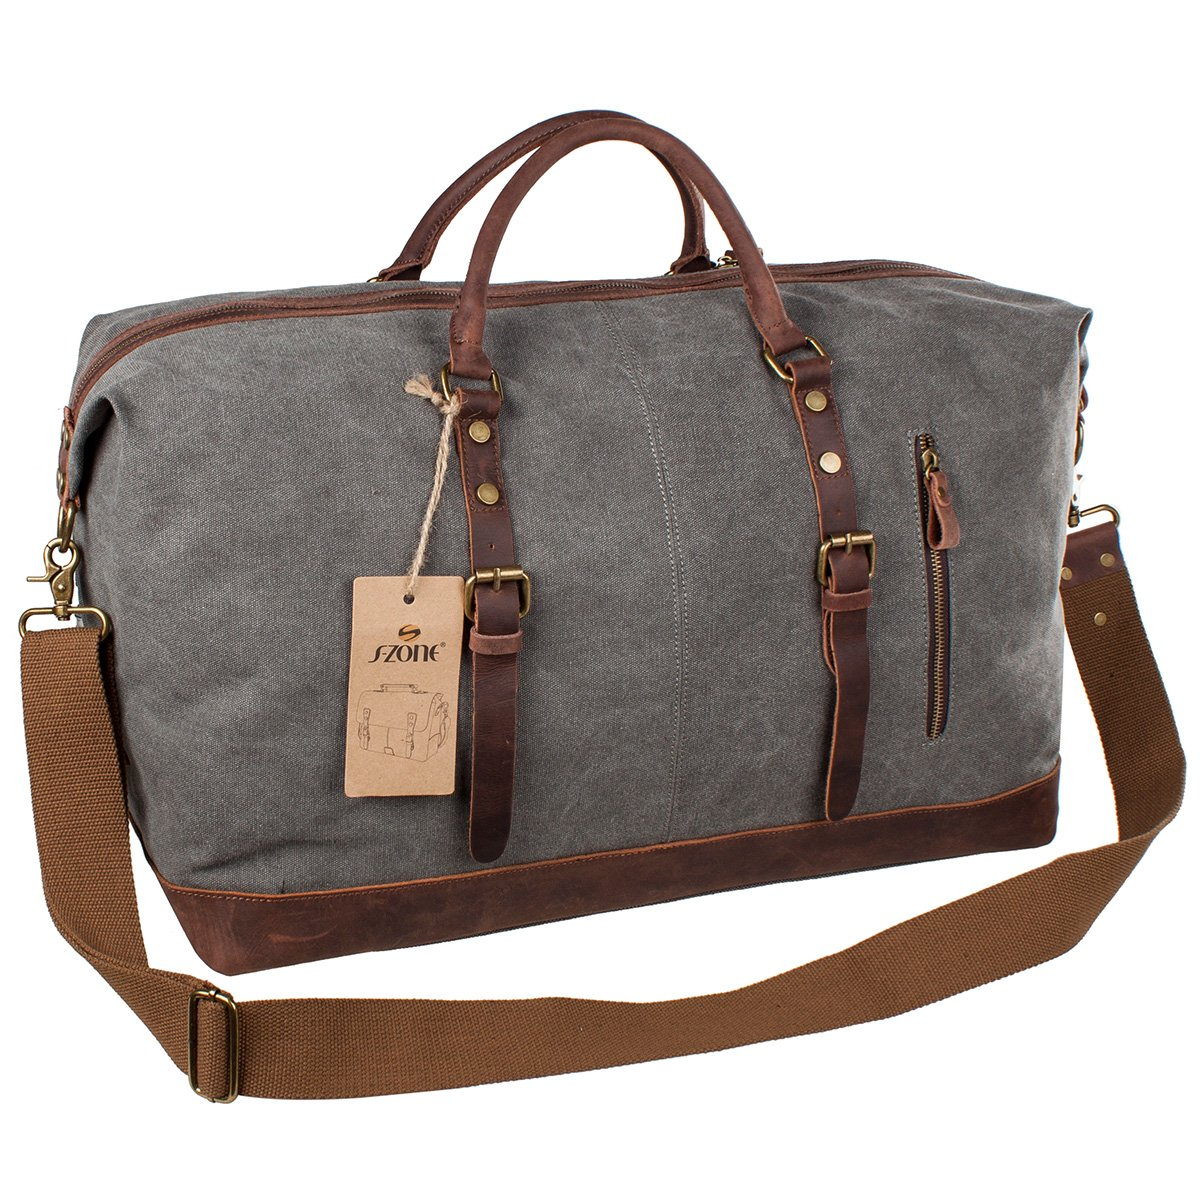 s zone mens canvas leather holdall travel duffle overnight weekend satchel bag ebay. Black Bedroom Furniture Sets. Home Design Ideas